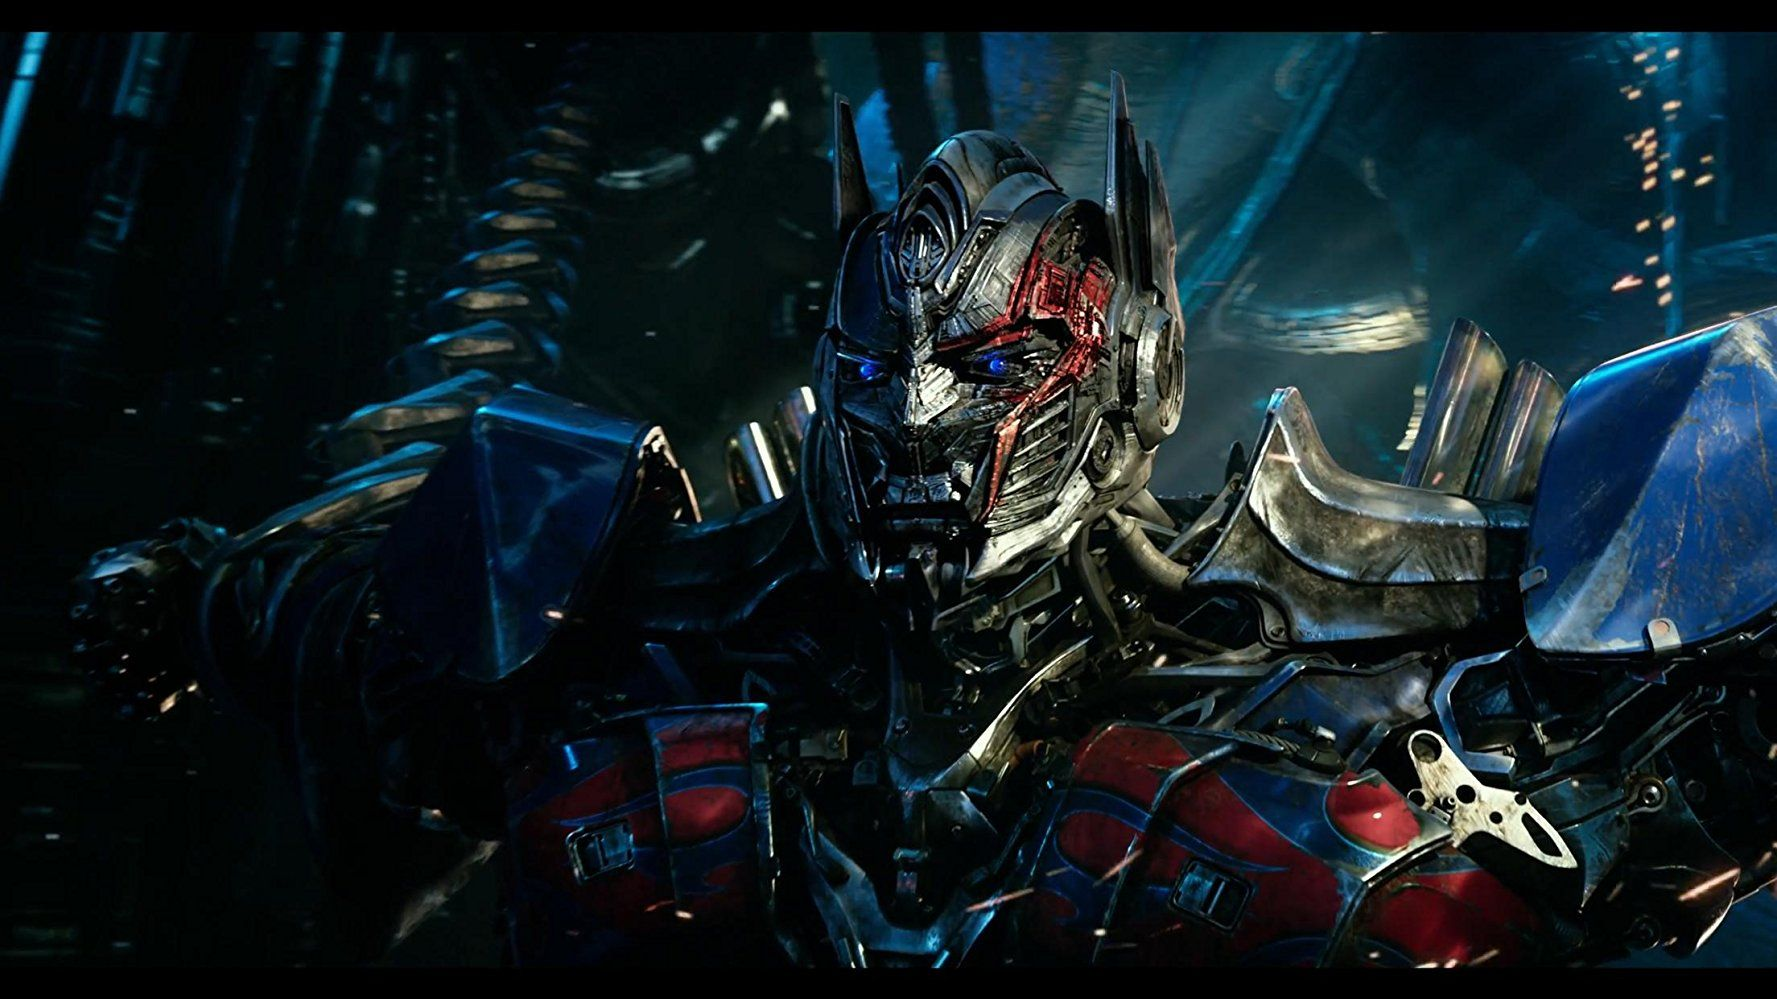 Imagenes De Transformers: Transformers 5: Peter Cullen, Frank Welker On Optimus